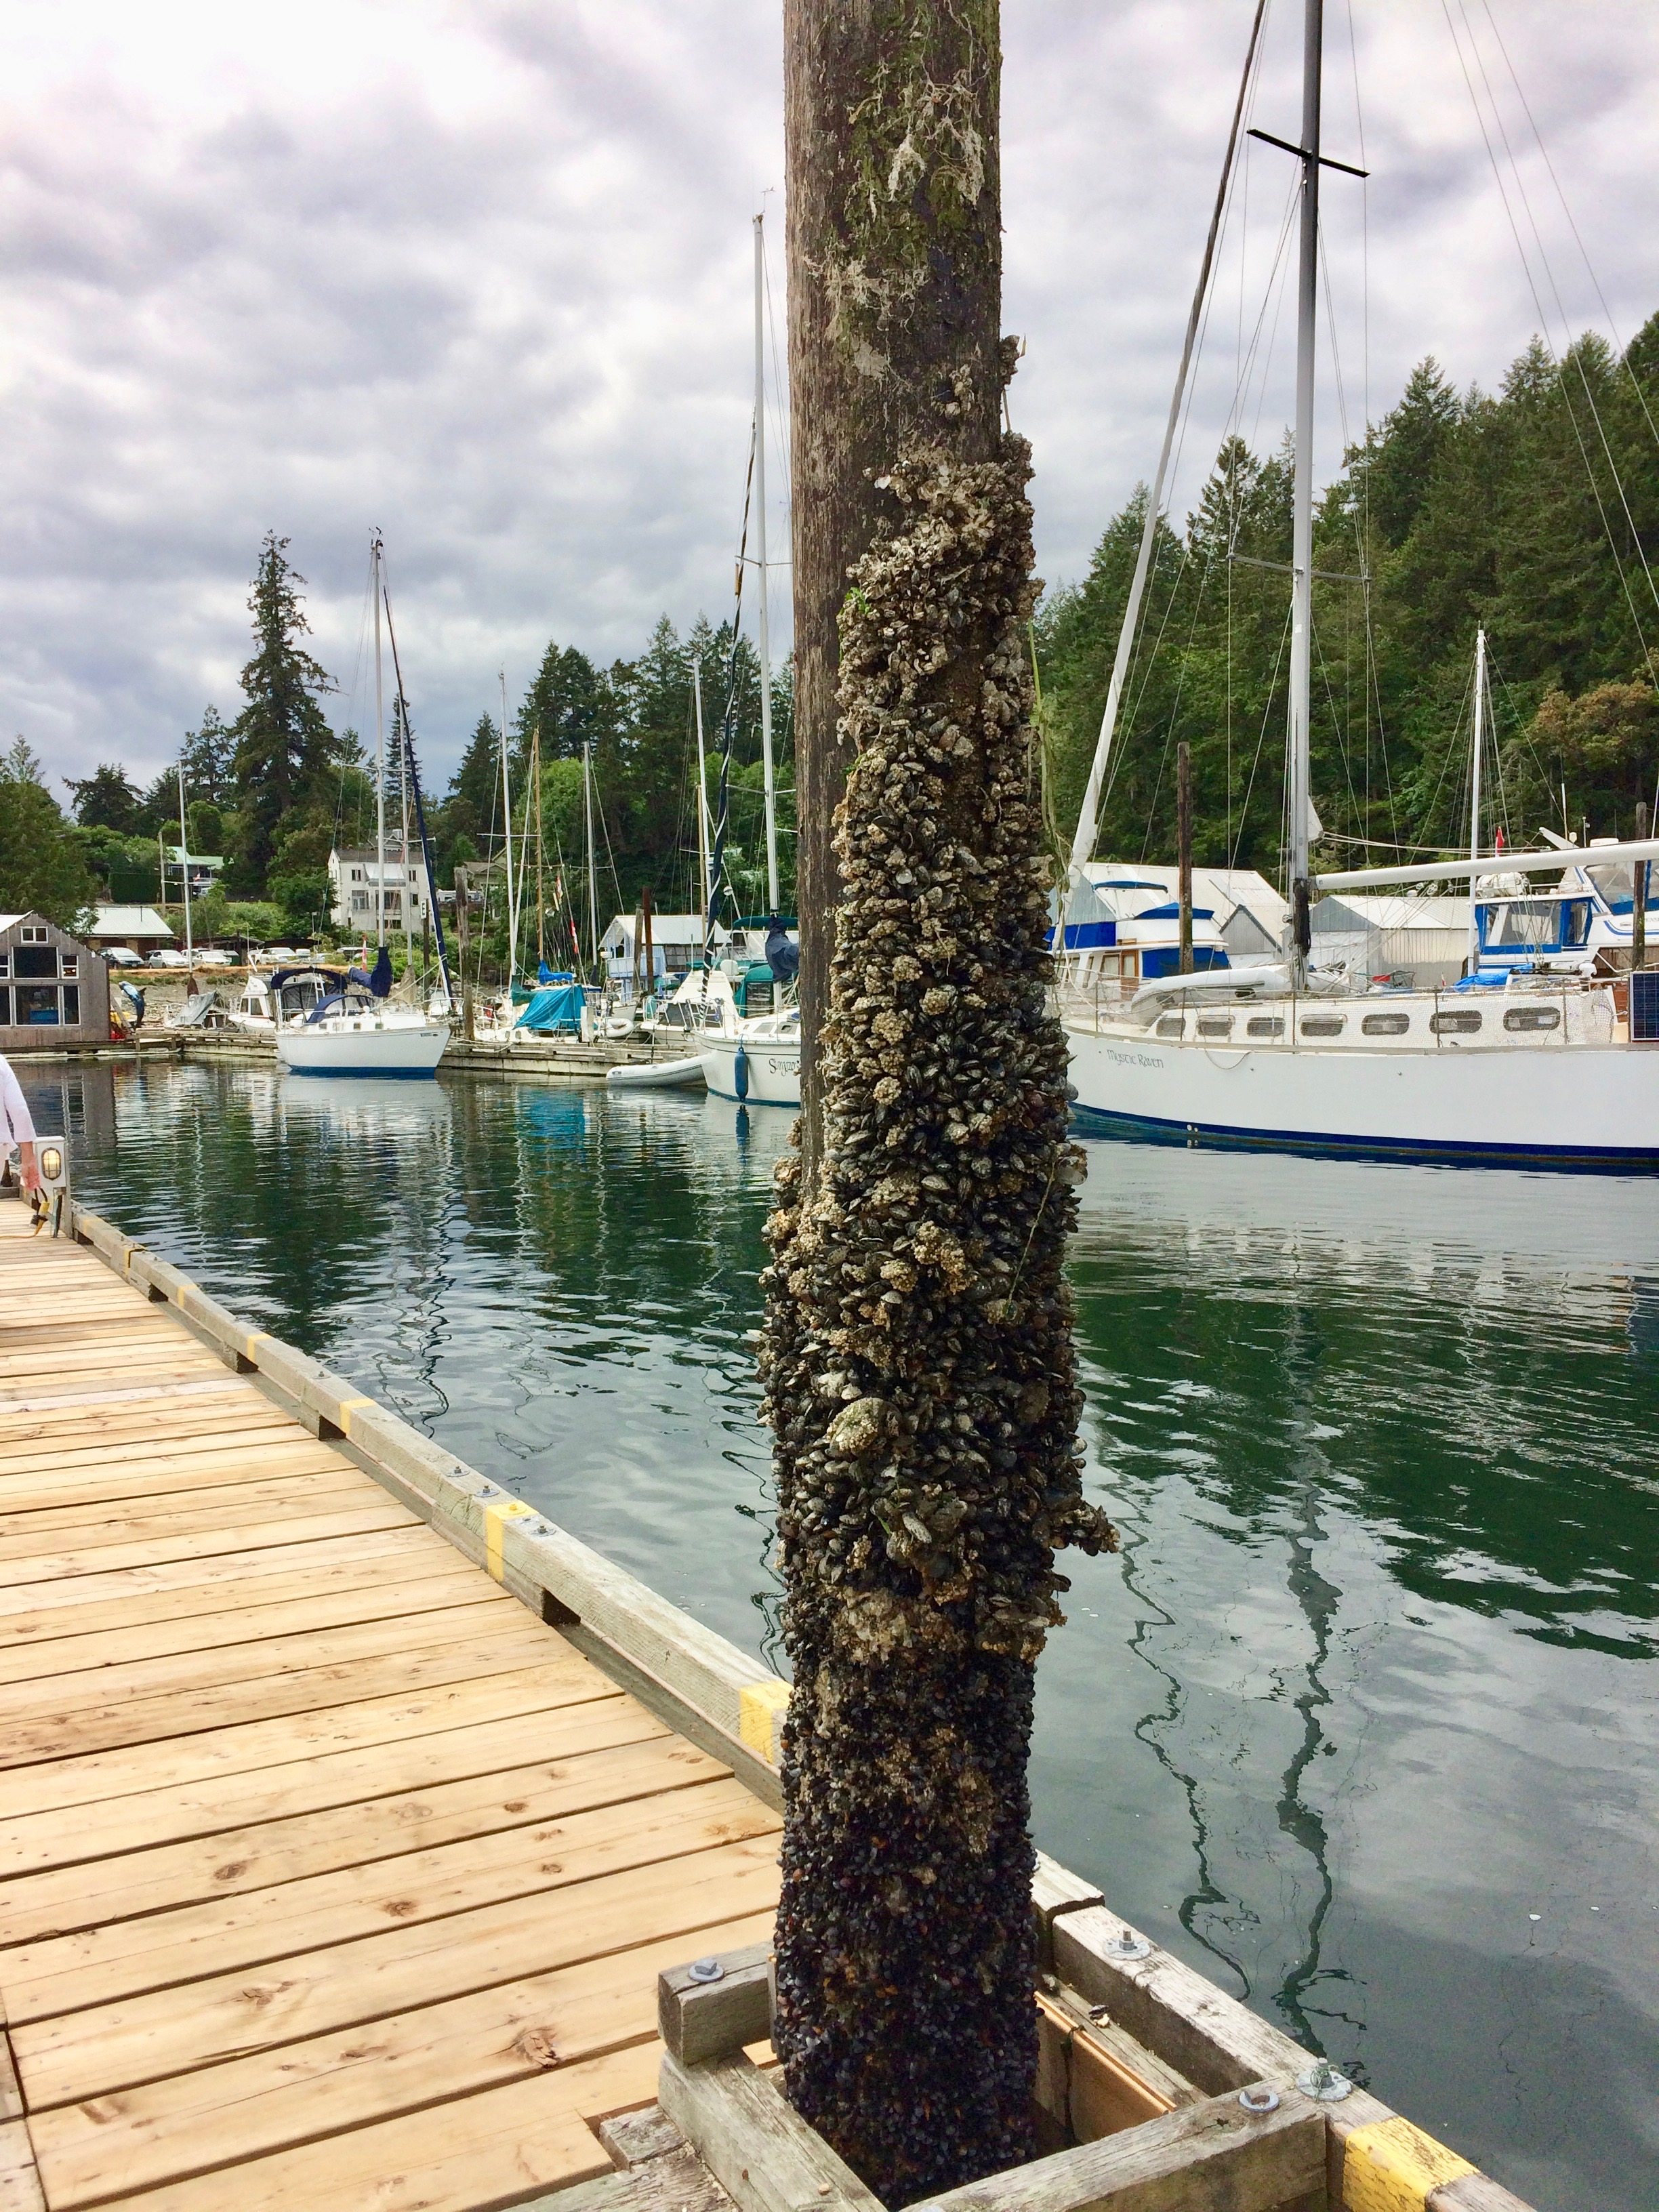 Barnacles indicate water line